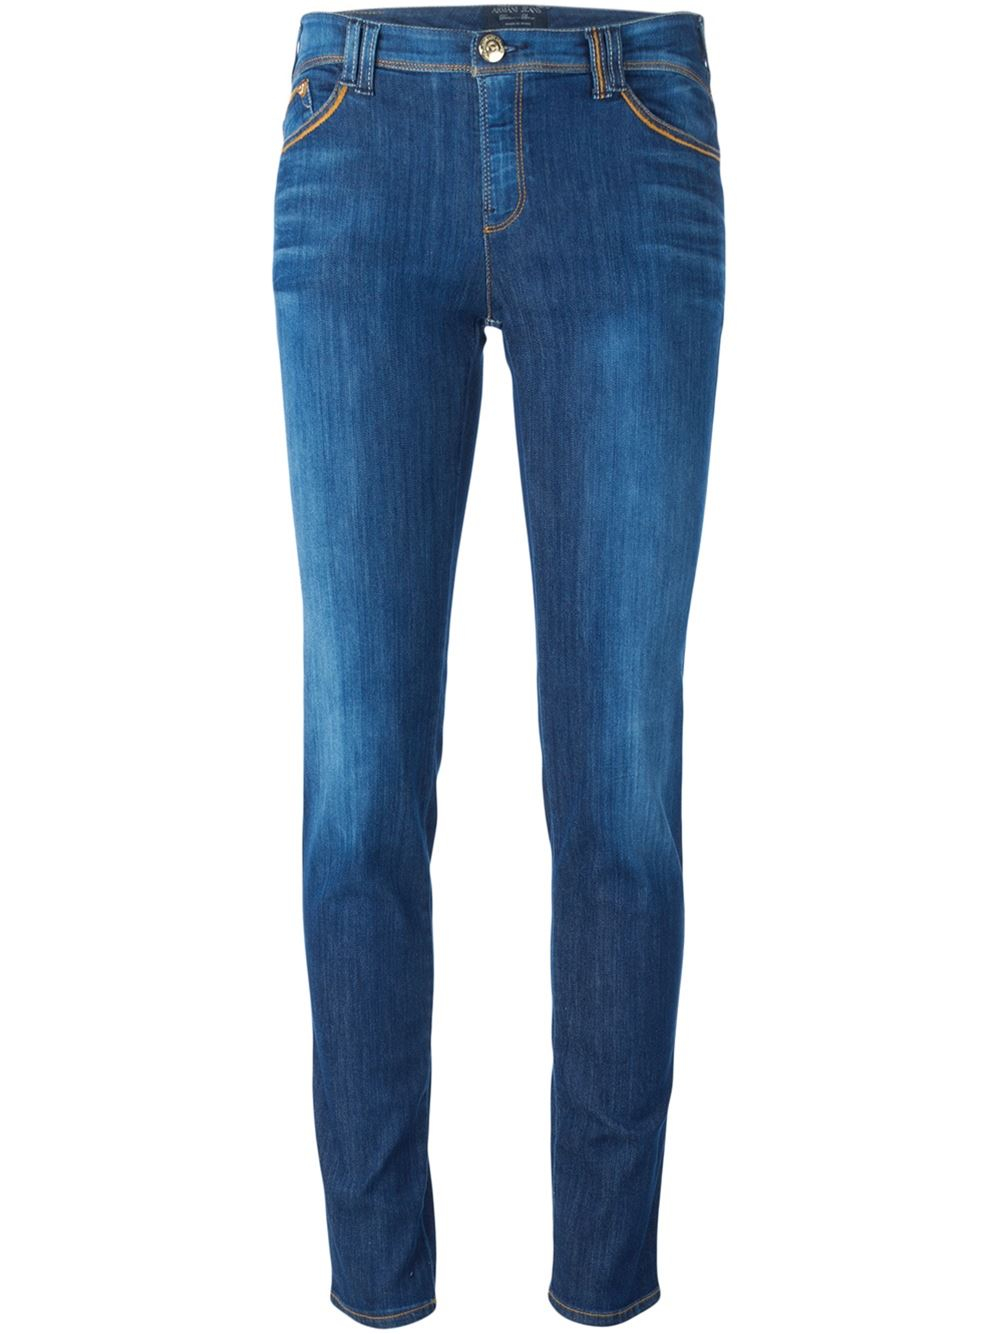 armani jeans stone washed skinny jeans in blue lyst. Black Bedroom Furniture Sets. Home Design Ideas